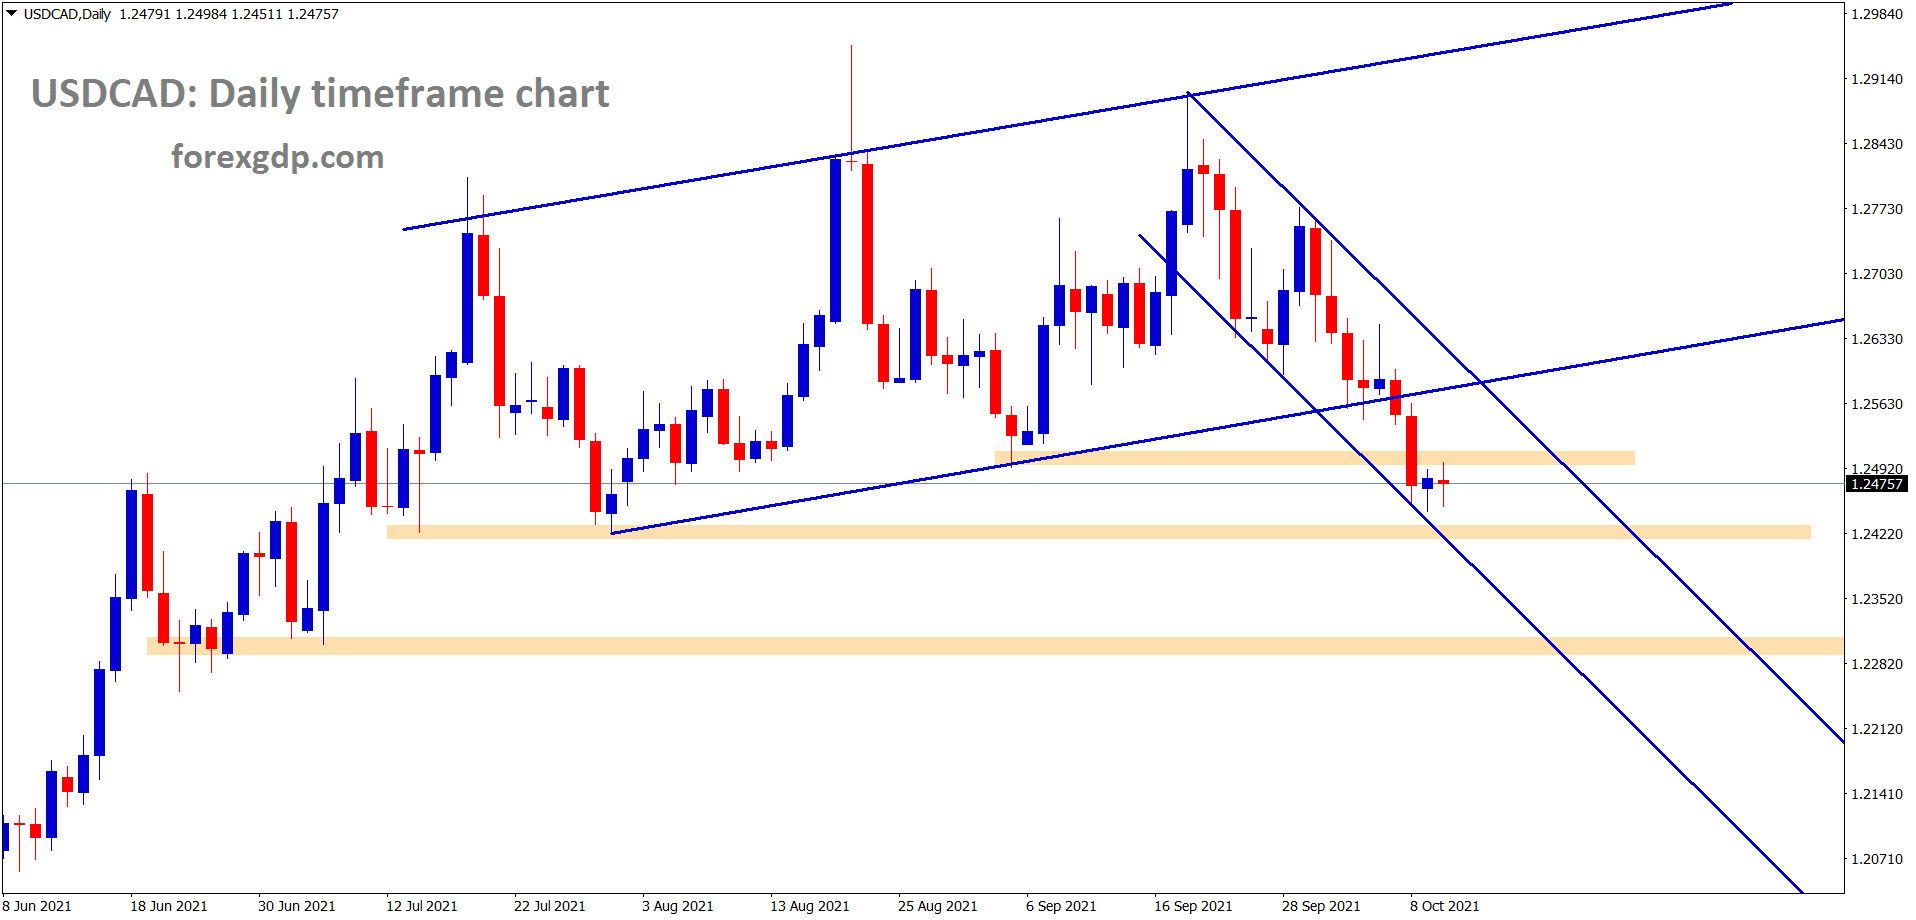 USDCAD is consolidating at the lower low level of descending channel